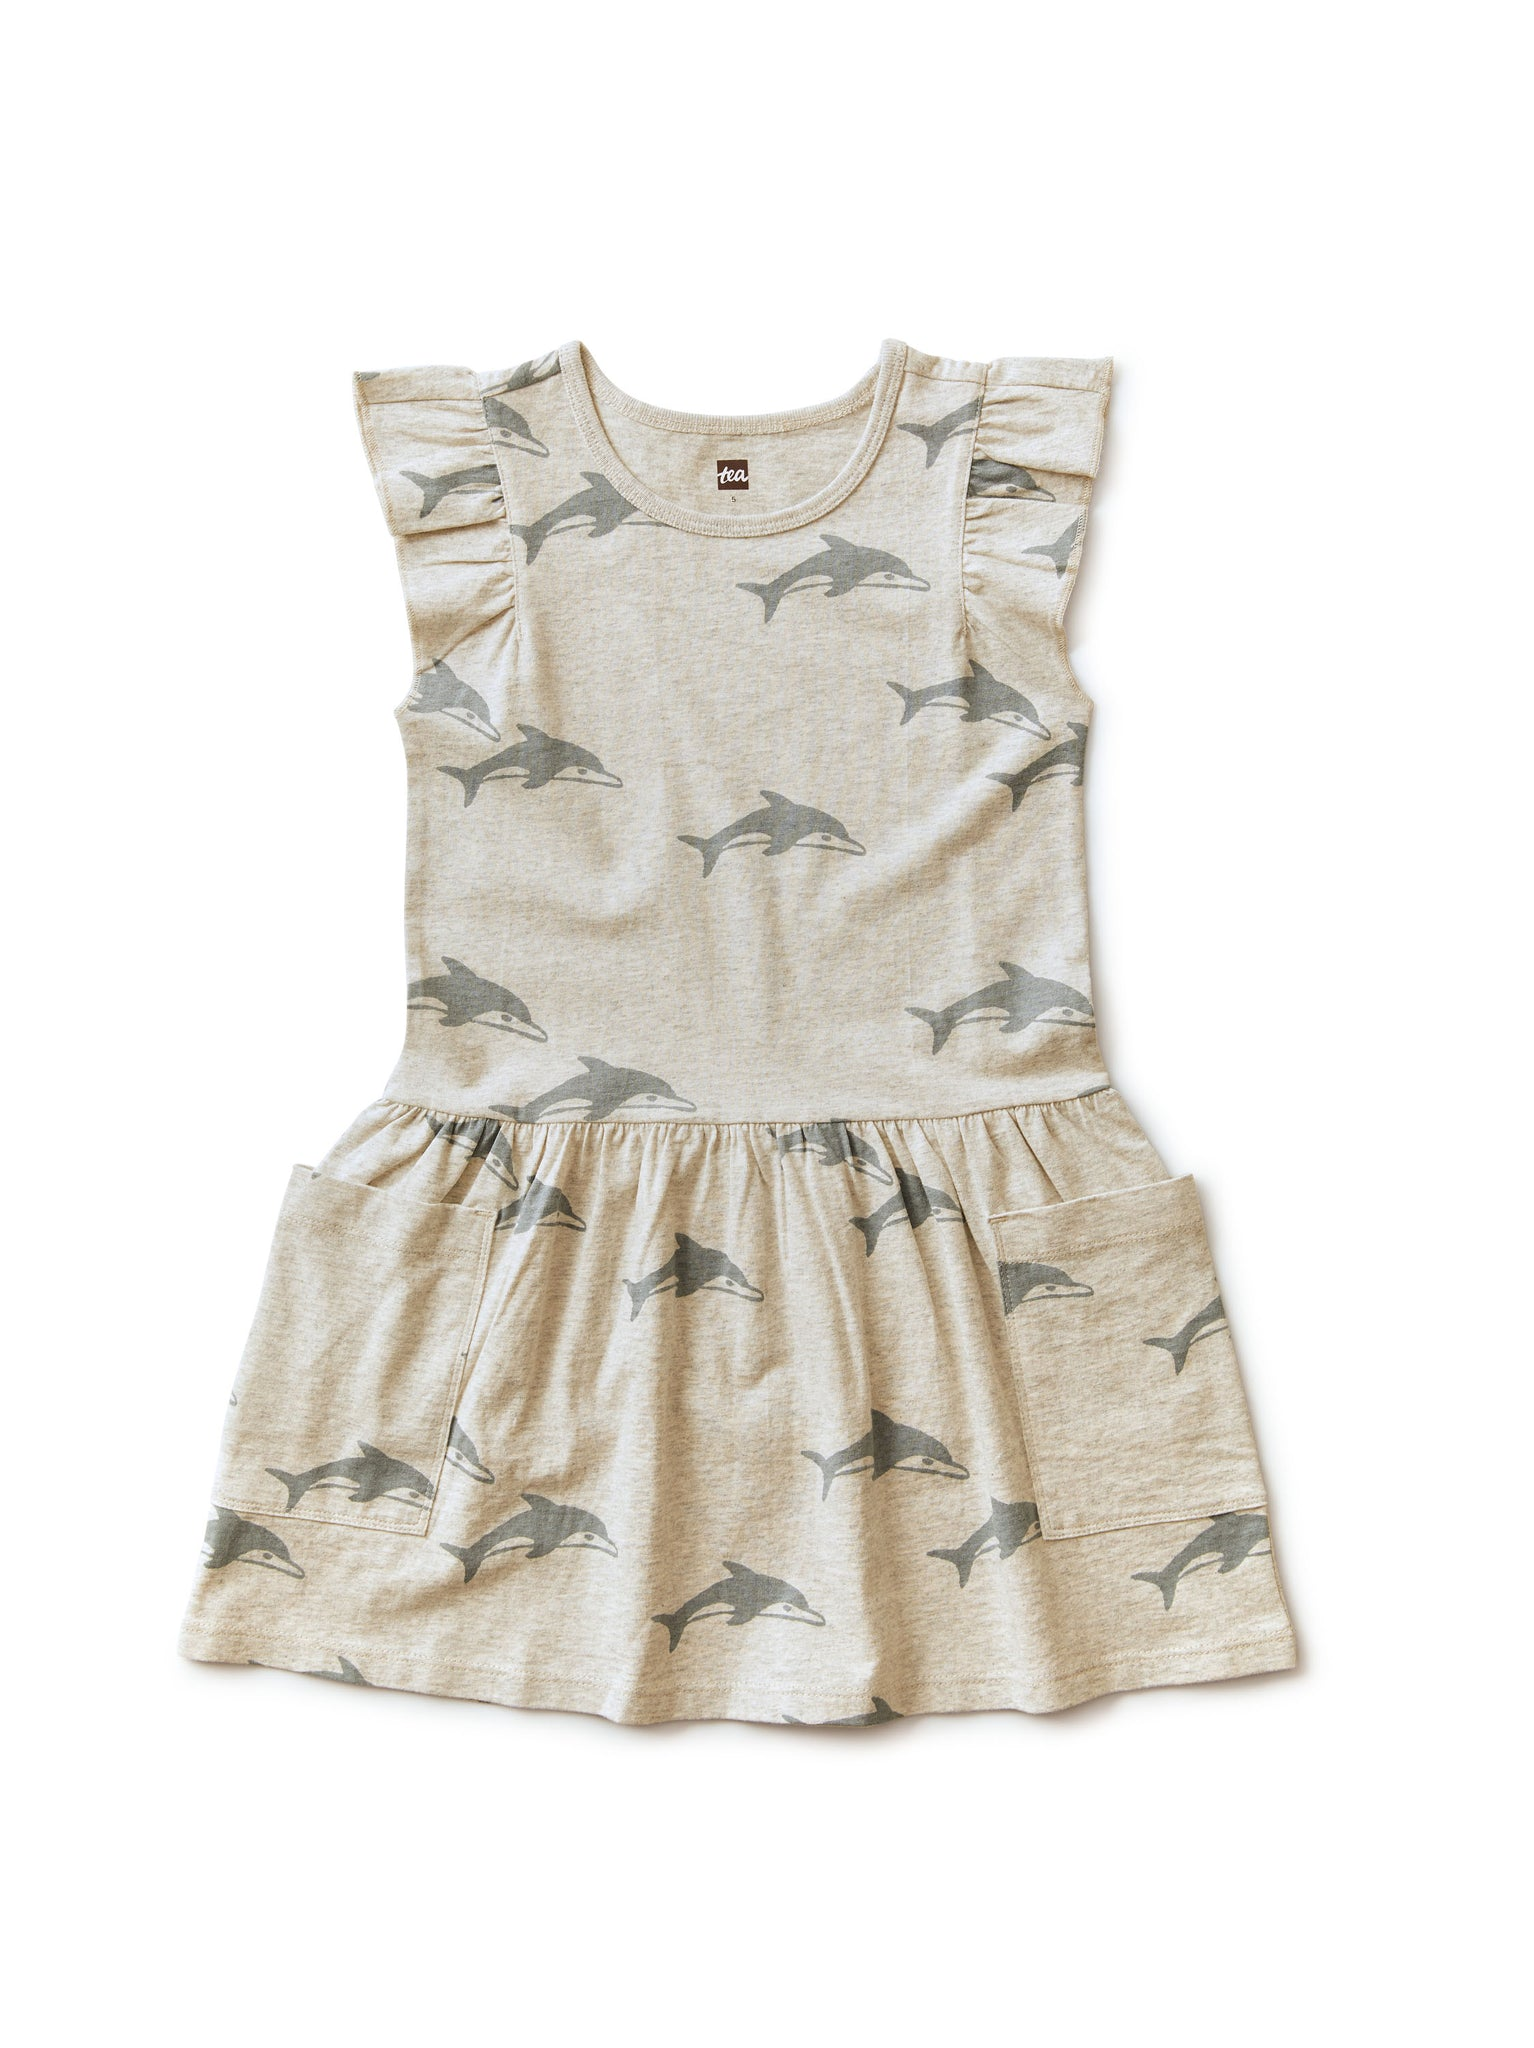 Pocket Dress - Dolphin Heather Gray